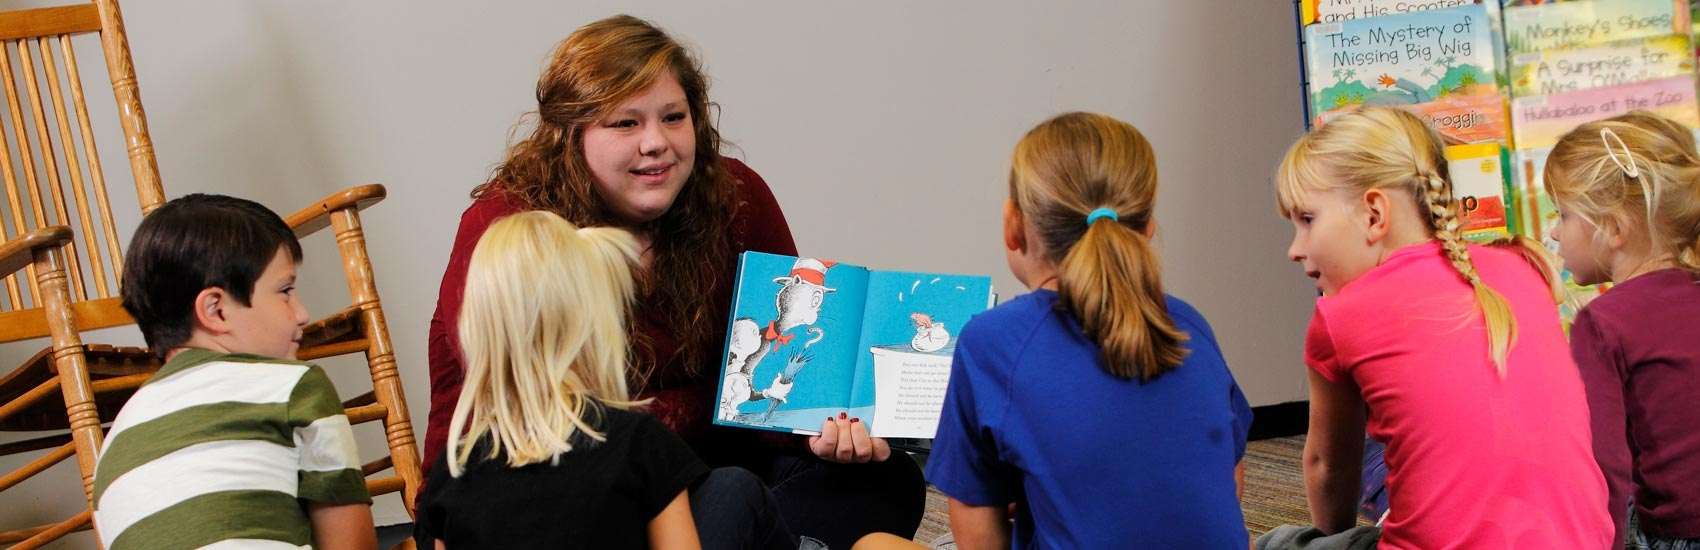 USF Elementary Education student reading a book to children.